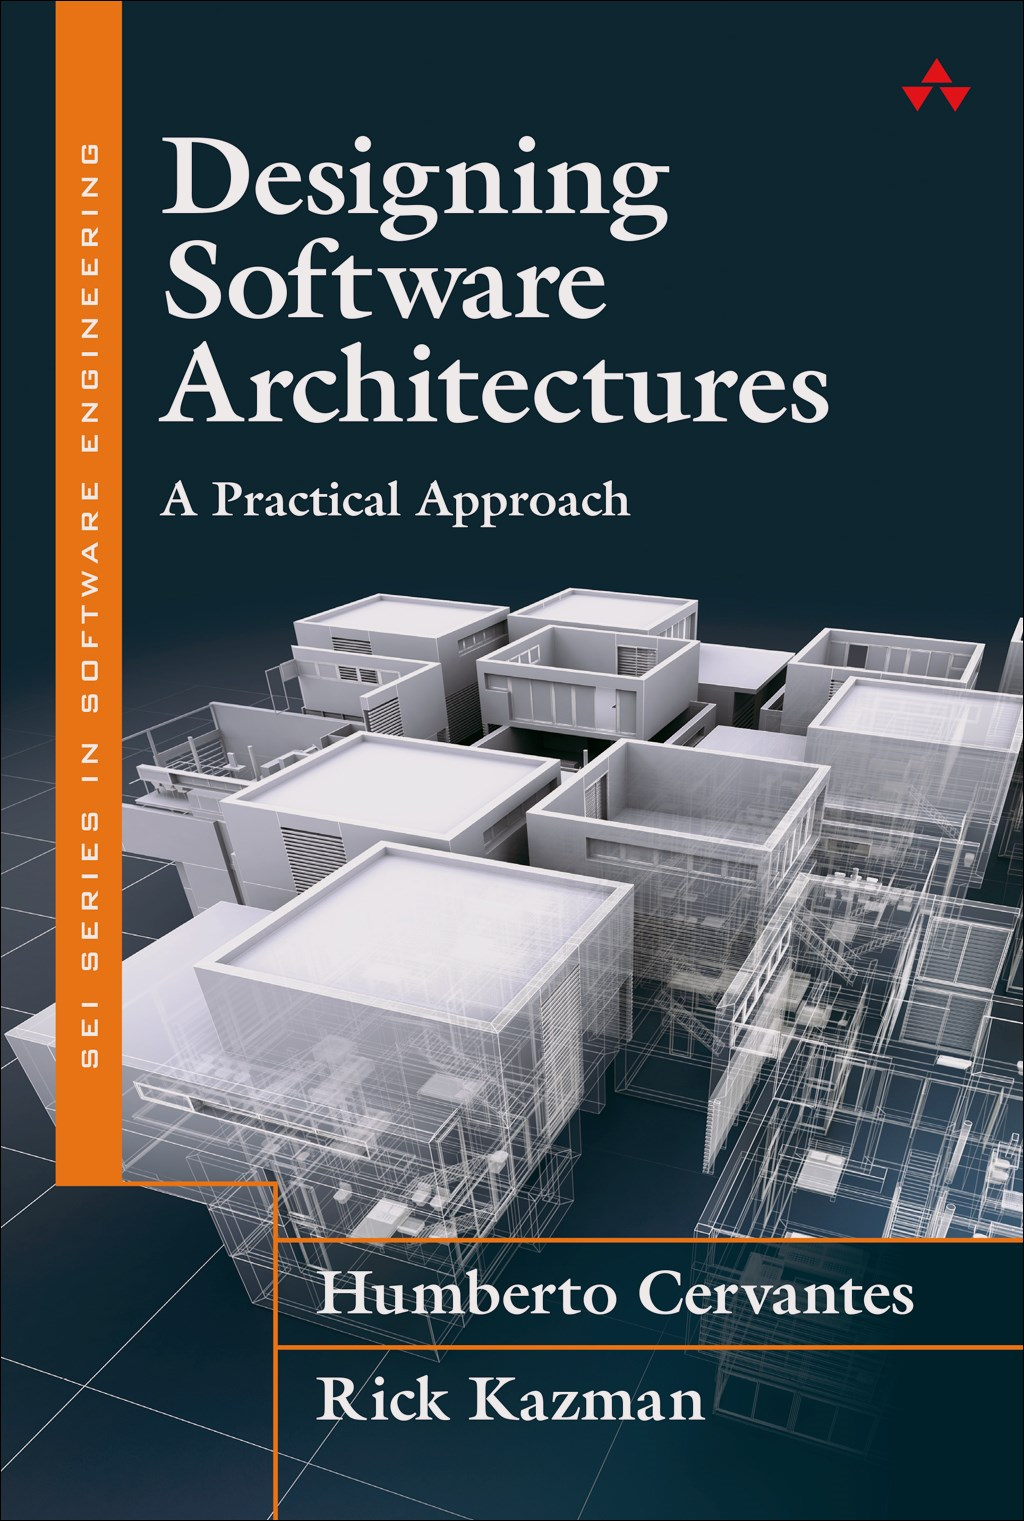 Designing Software Architectures: A Practical Approach